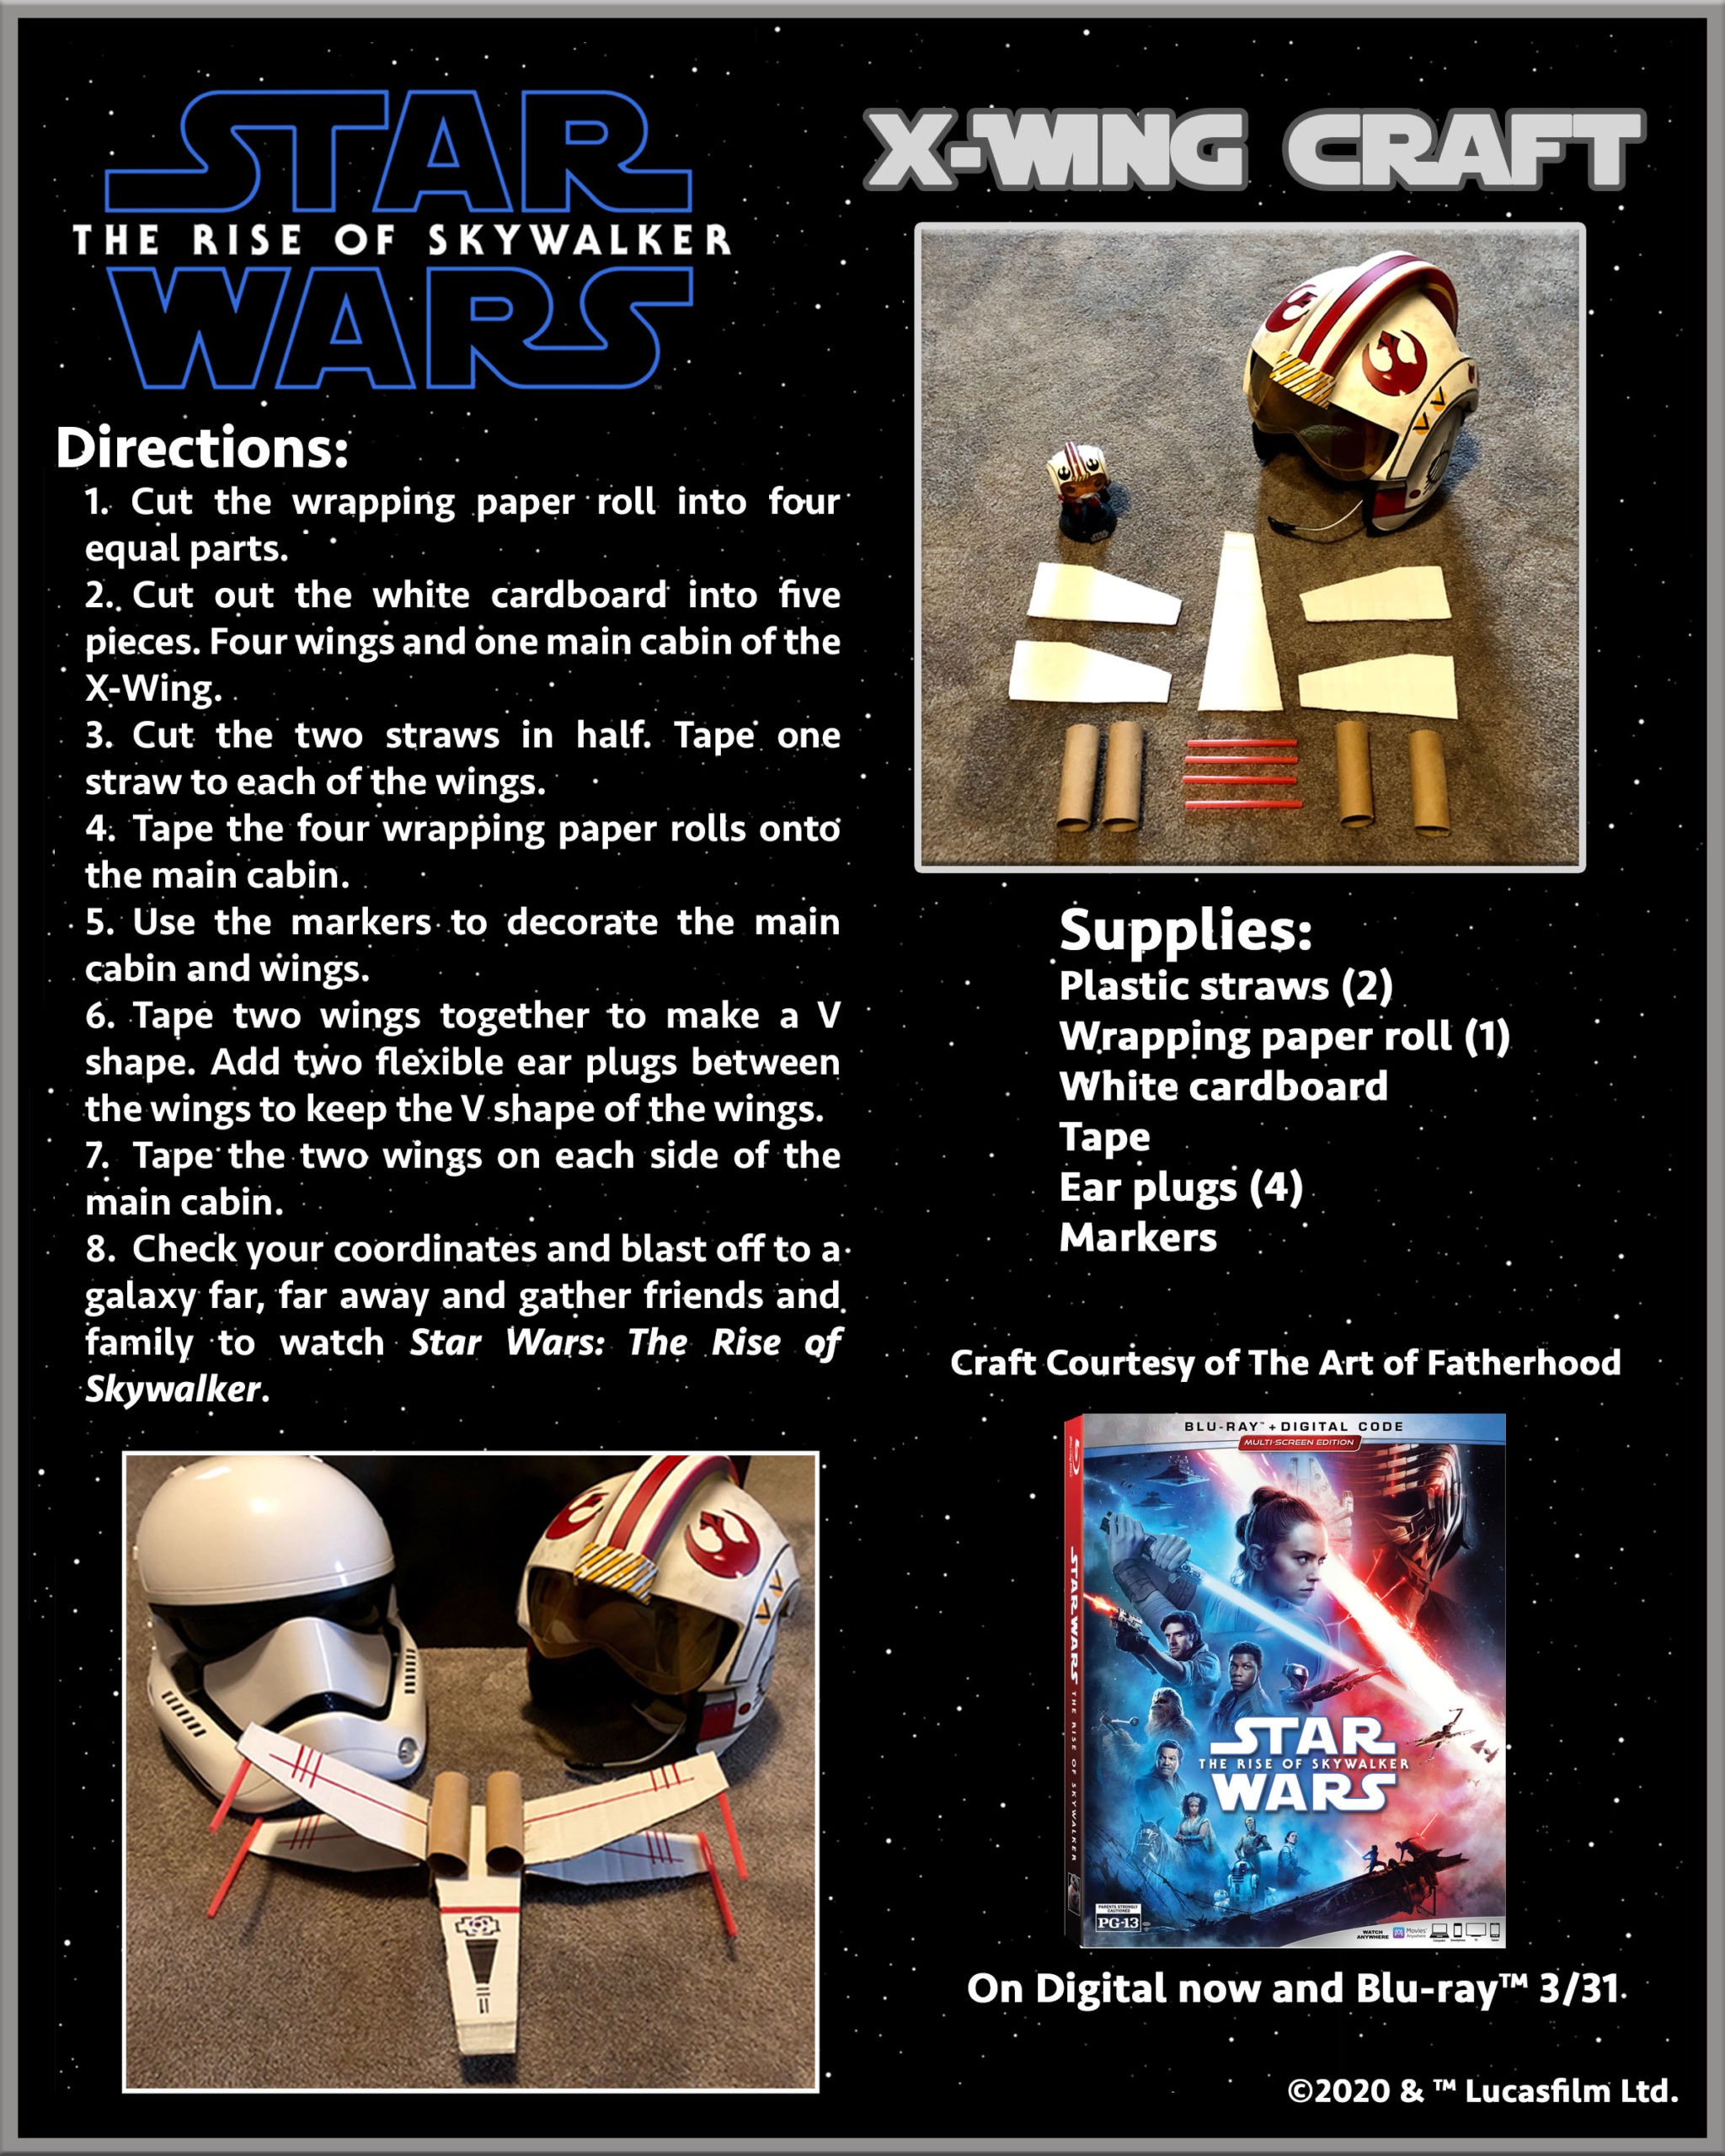 Star Wars: The Rise of Skywalker Movie & X-Wing Craft For Kids